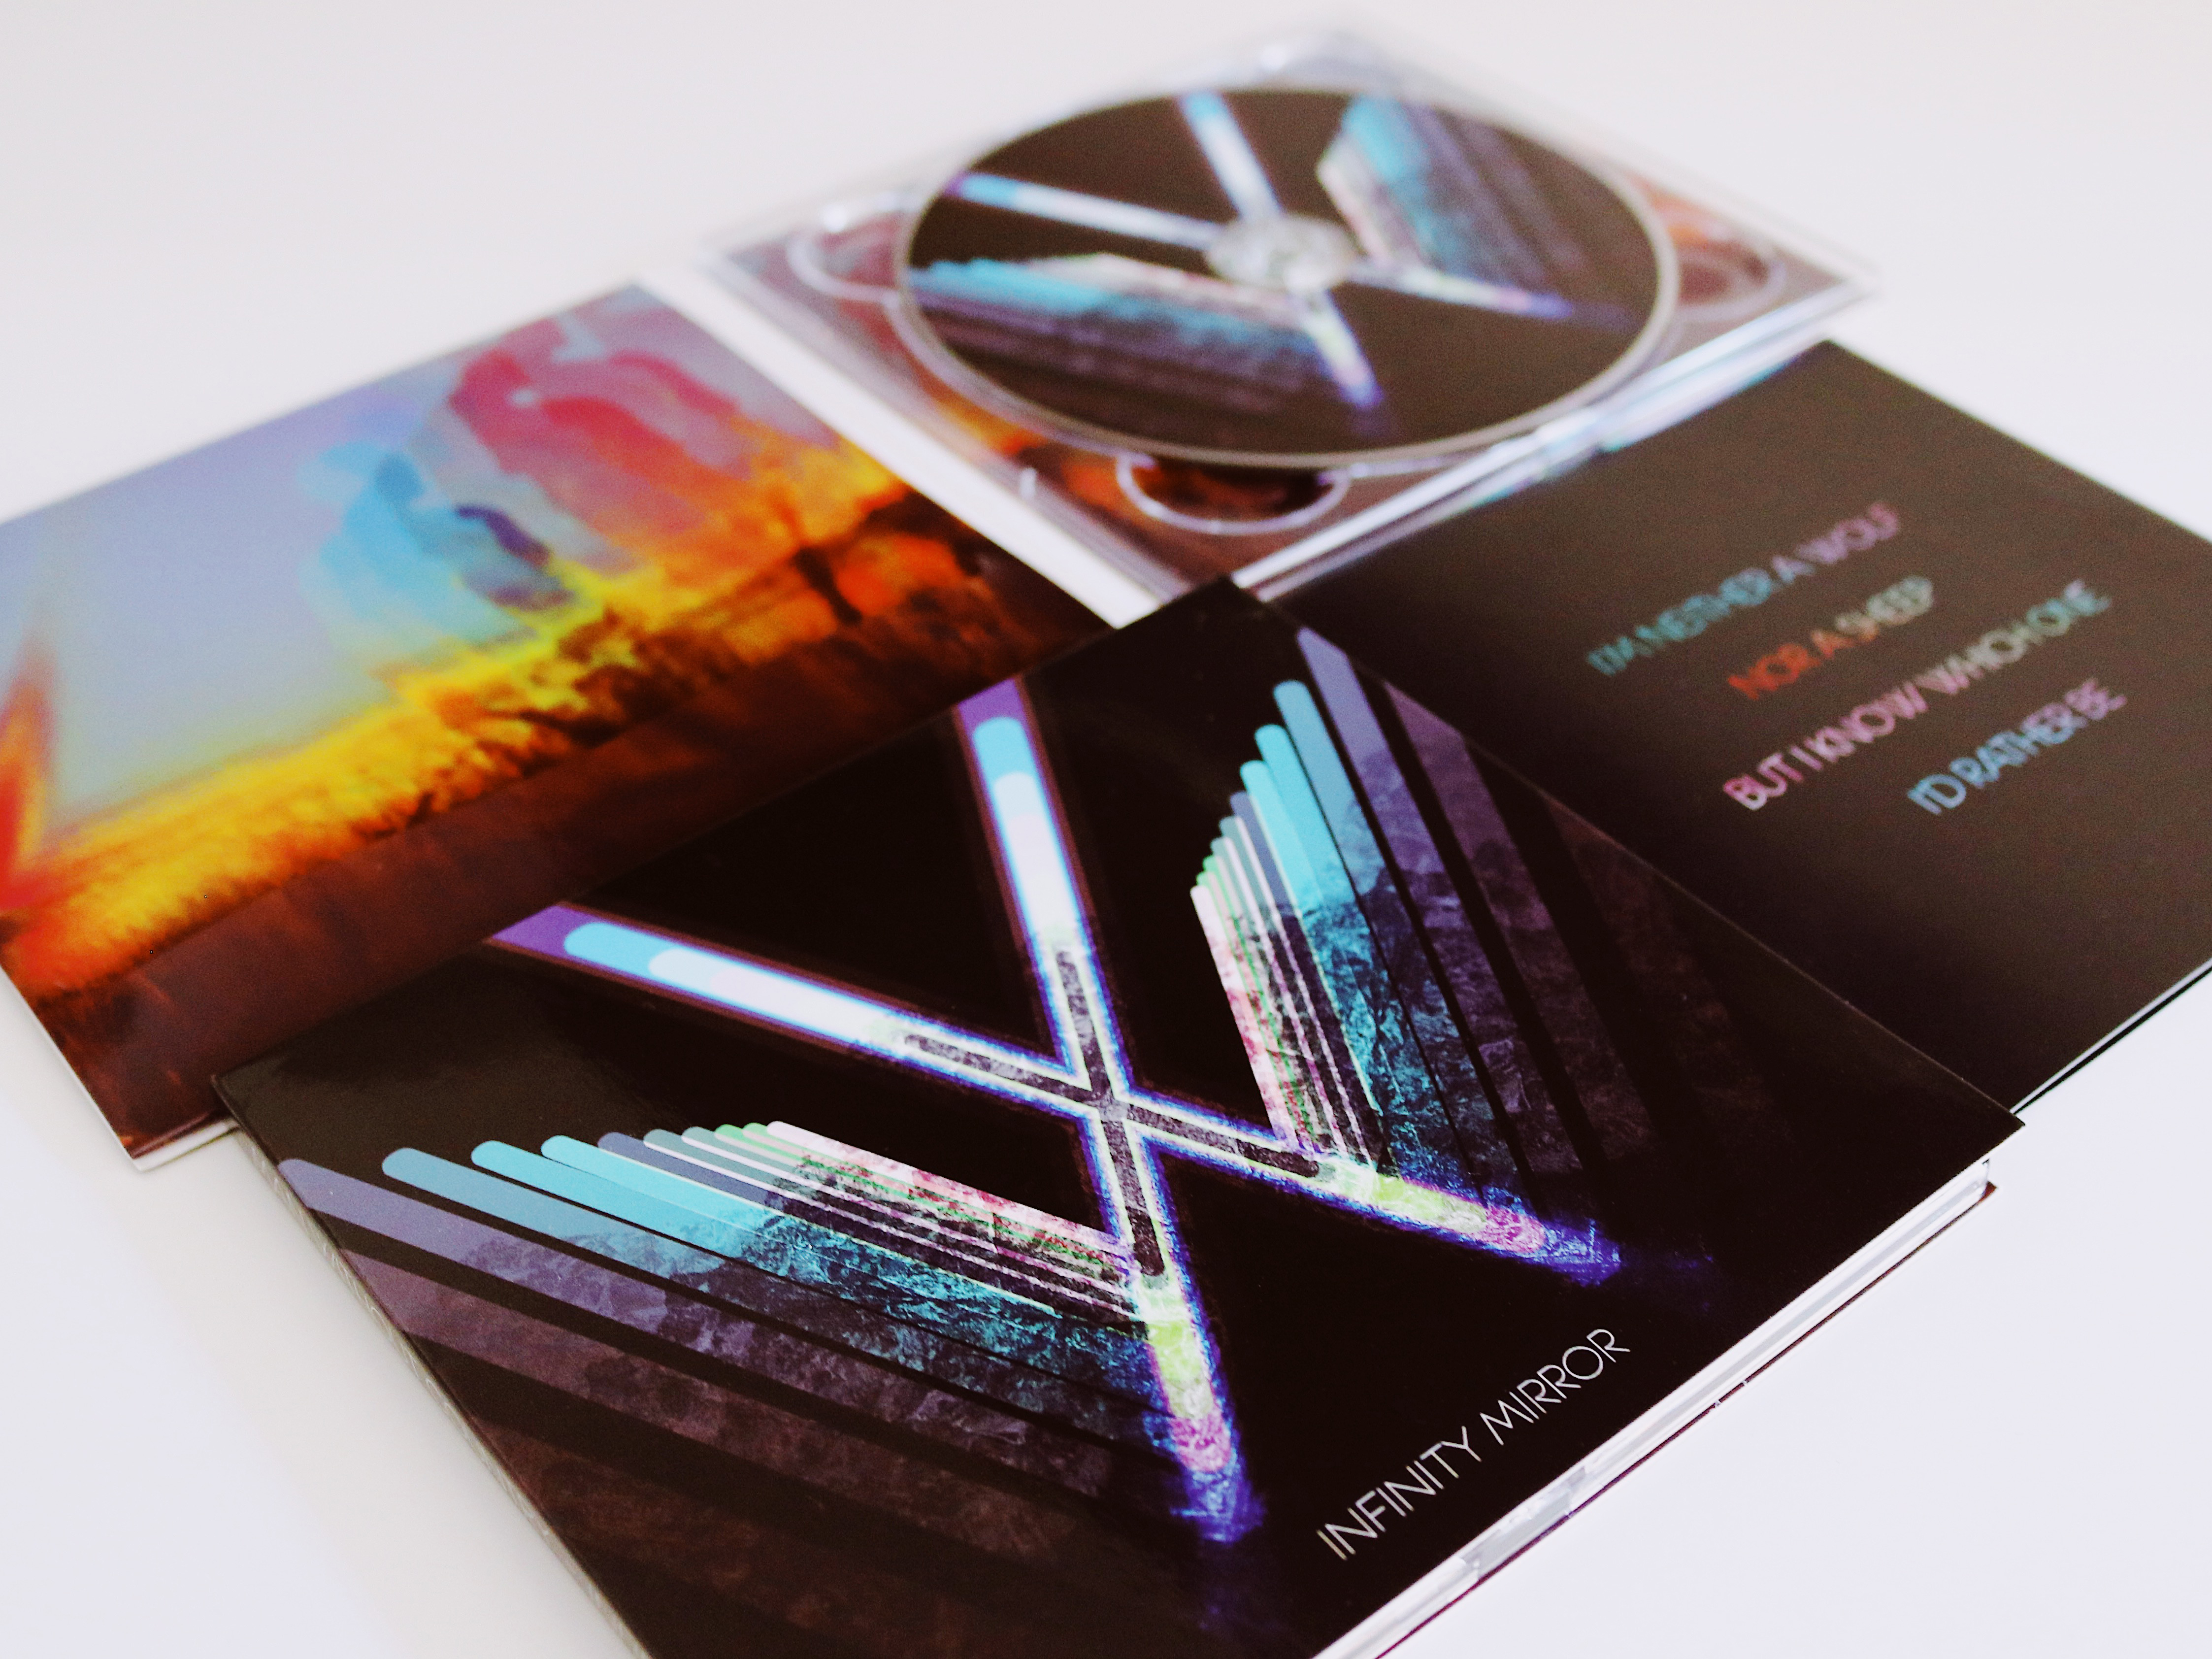 Infinity Mirror - Deluxe Digipak CD - Man Without Country